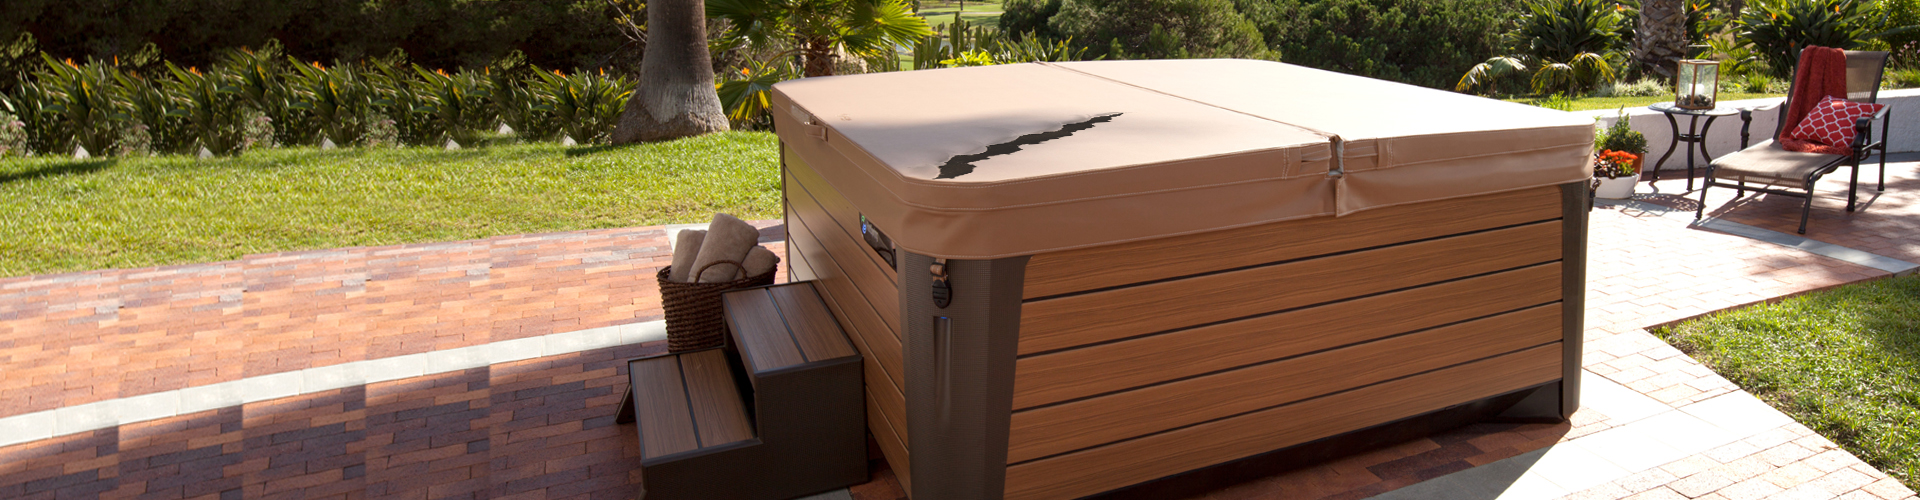 How to Tell if Your Hot Tub Cover Needs to be Replaced